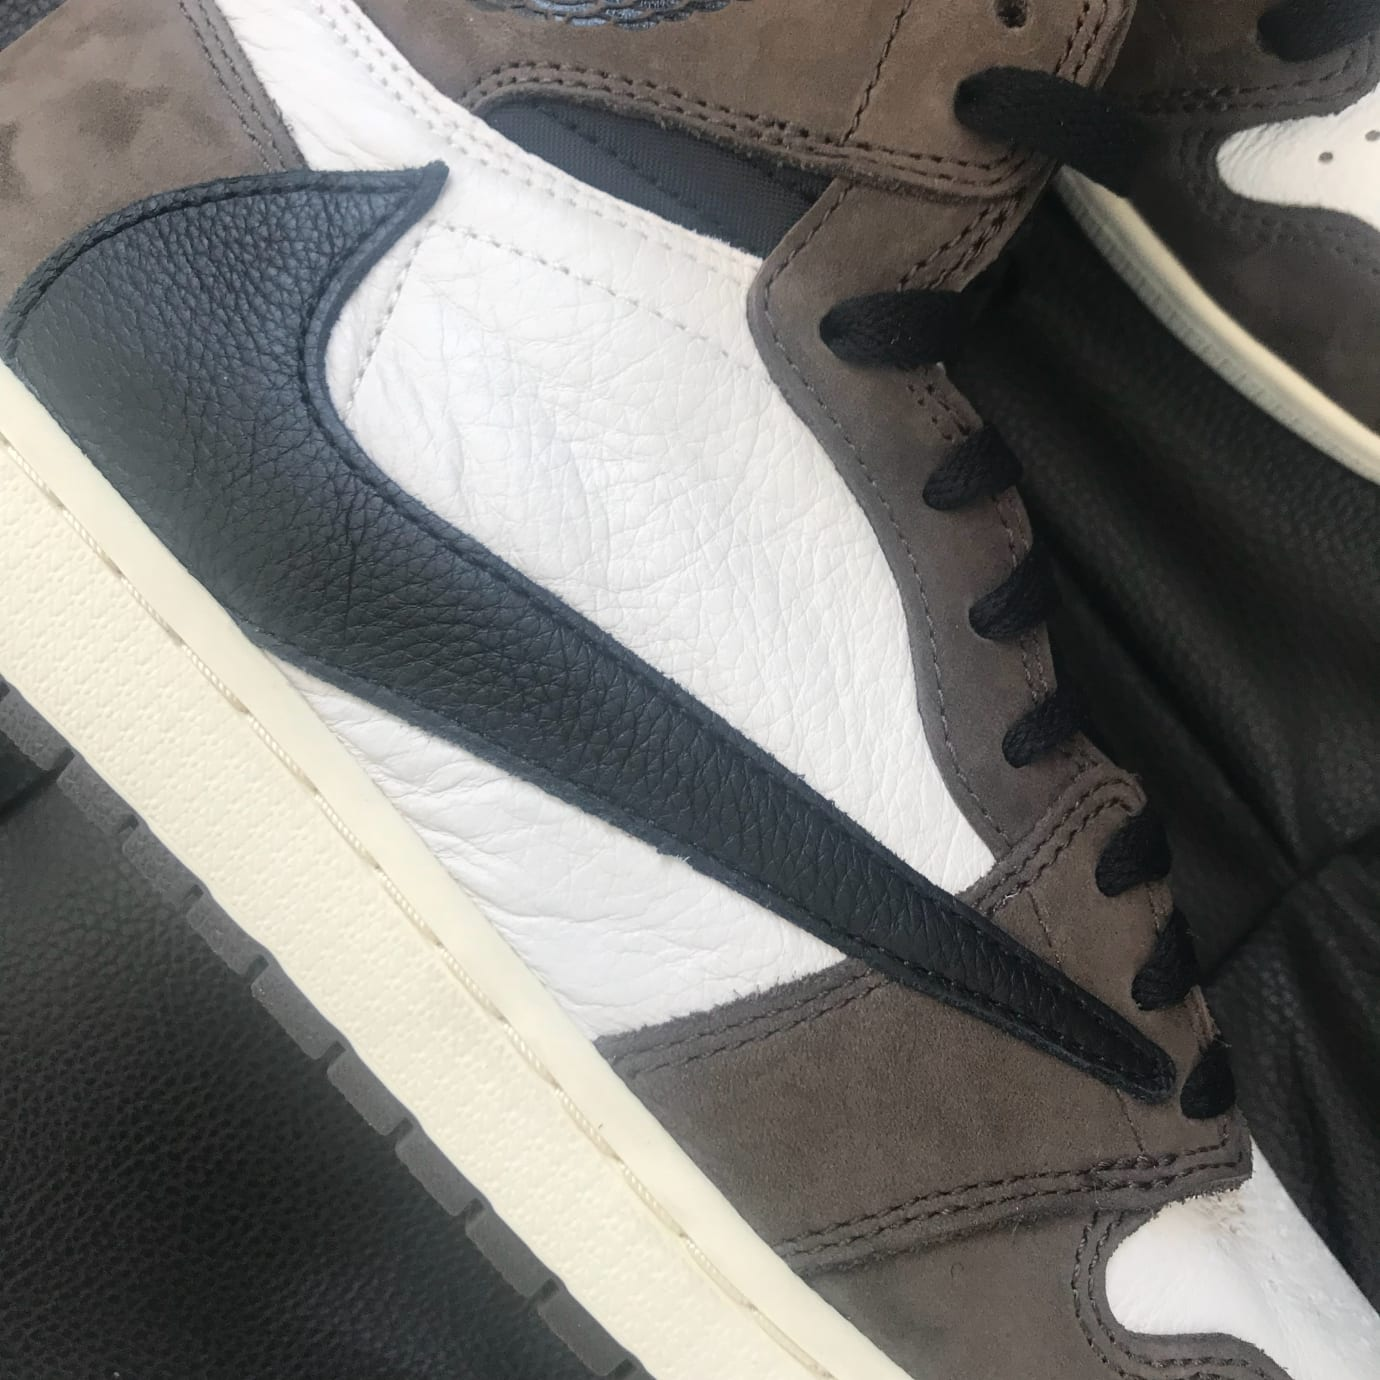 3160ce2b9bd0 Image via Weibo.cn Travis Scott x Air Jordan 1 High OG TS SP CD4487-100  (Swoosh Detail